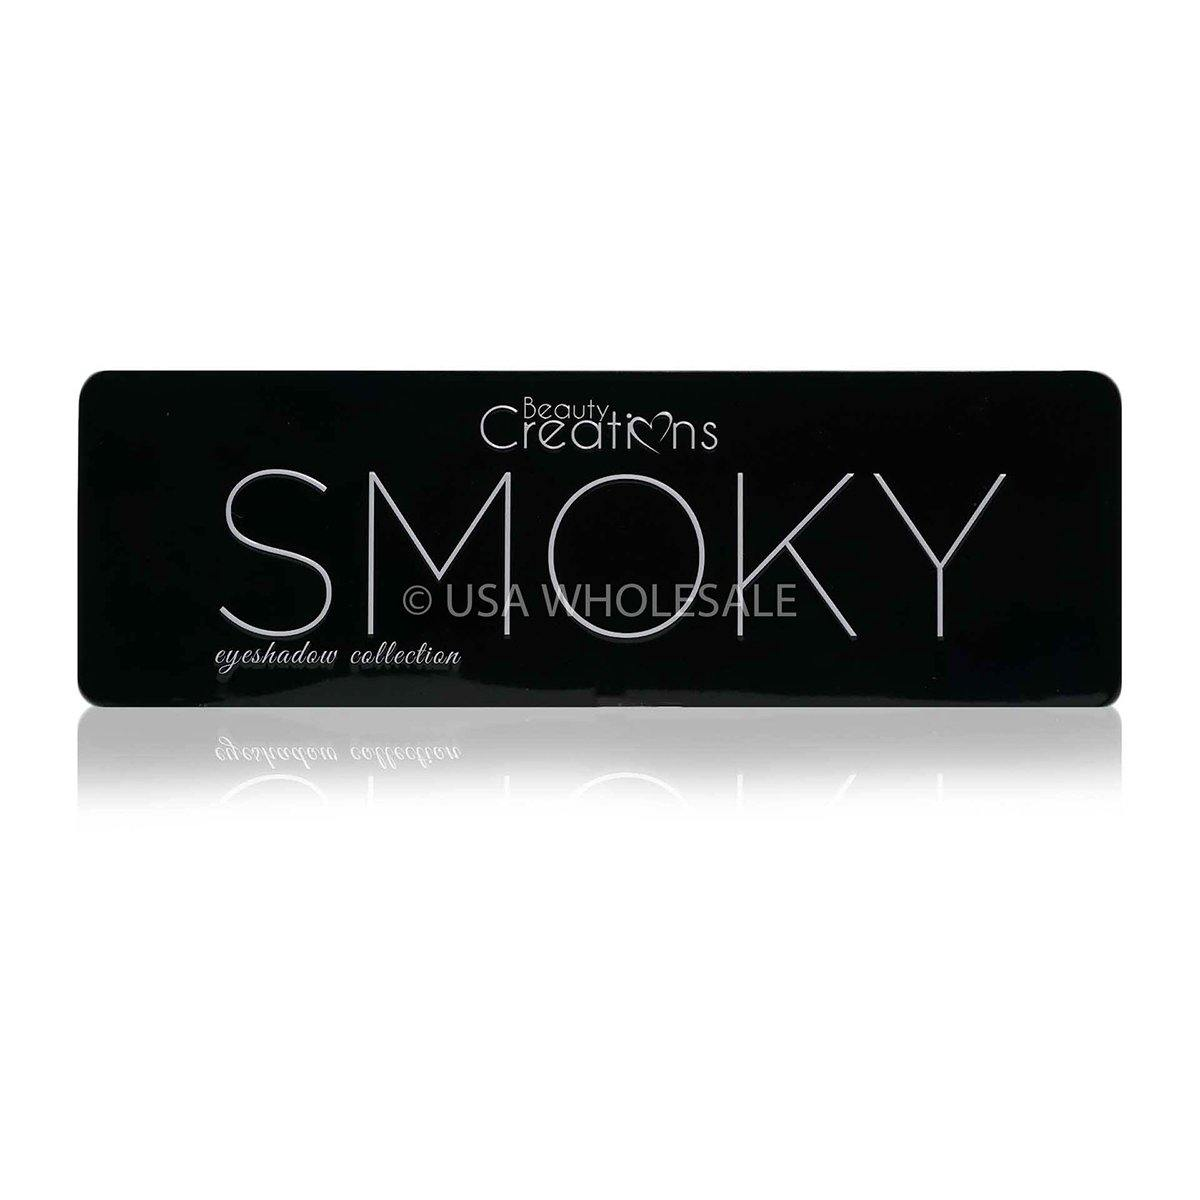 BEAUTY CREATIONS | Smoky Eyeshadow Palette w/ 12 Colors (Case of 12)